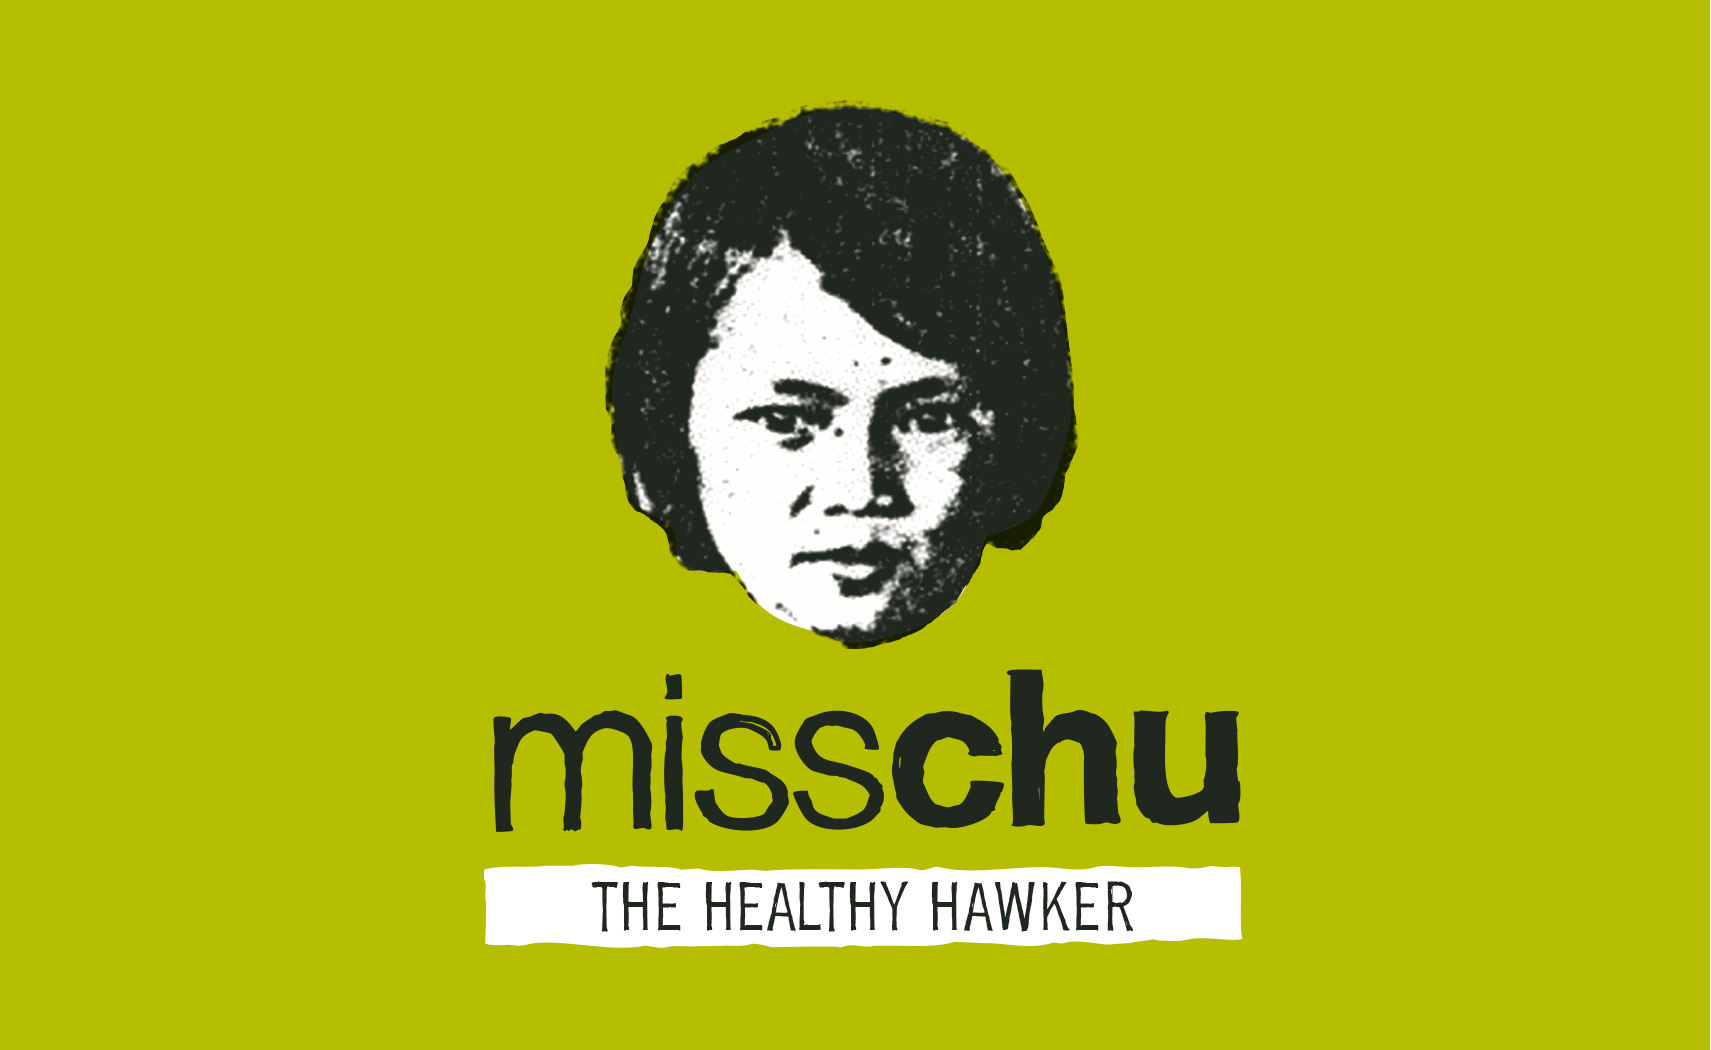 MISSCHU - The Healthy Hawker, Sydney